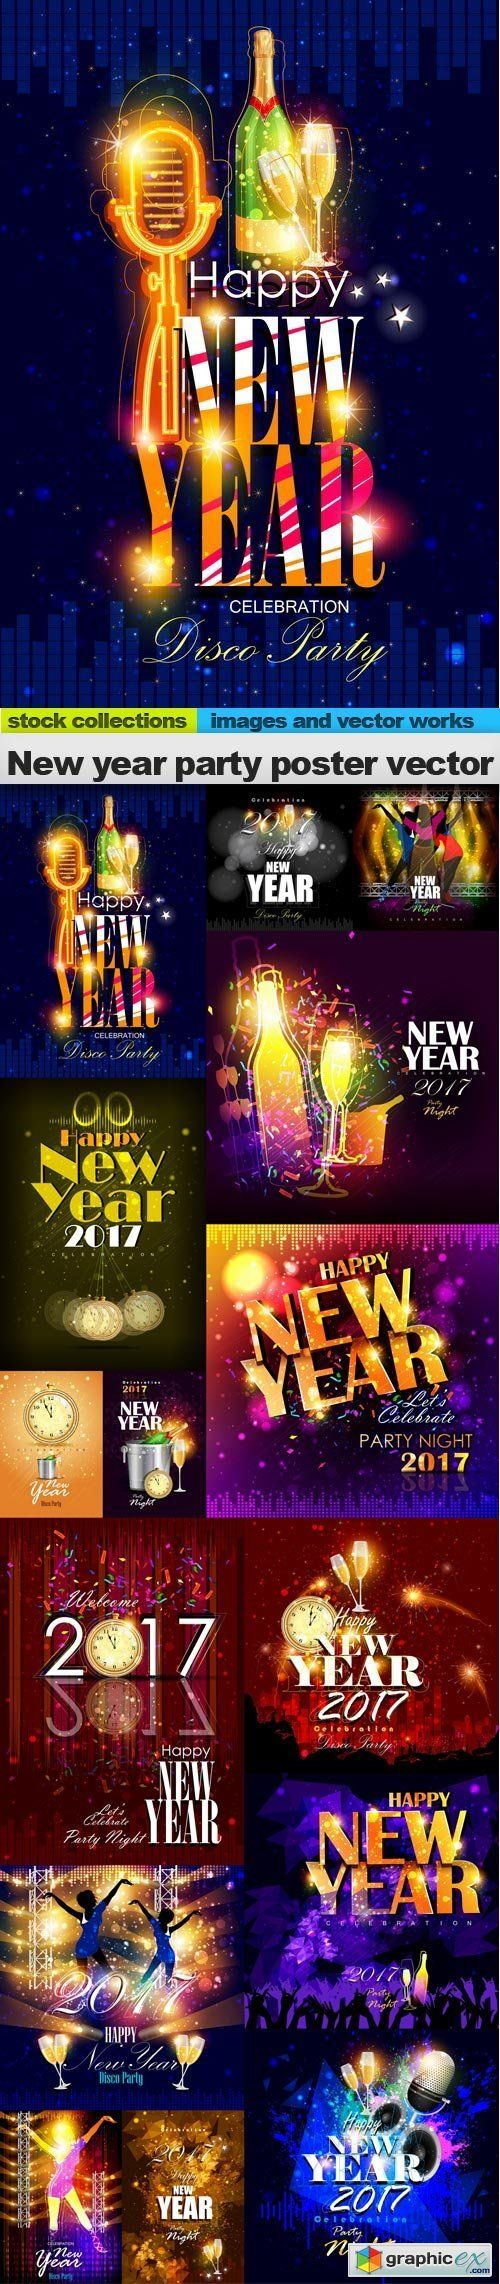 New year party poster vector, 15 x EPS